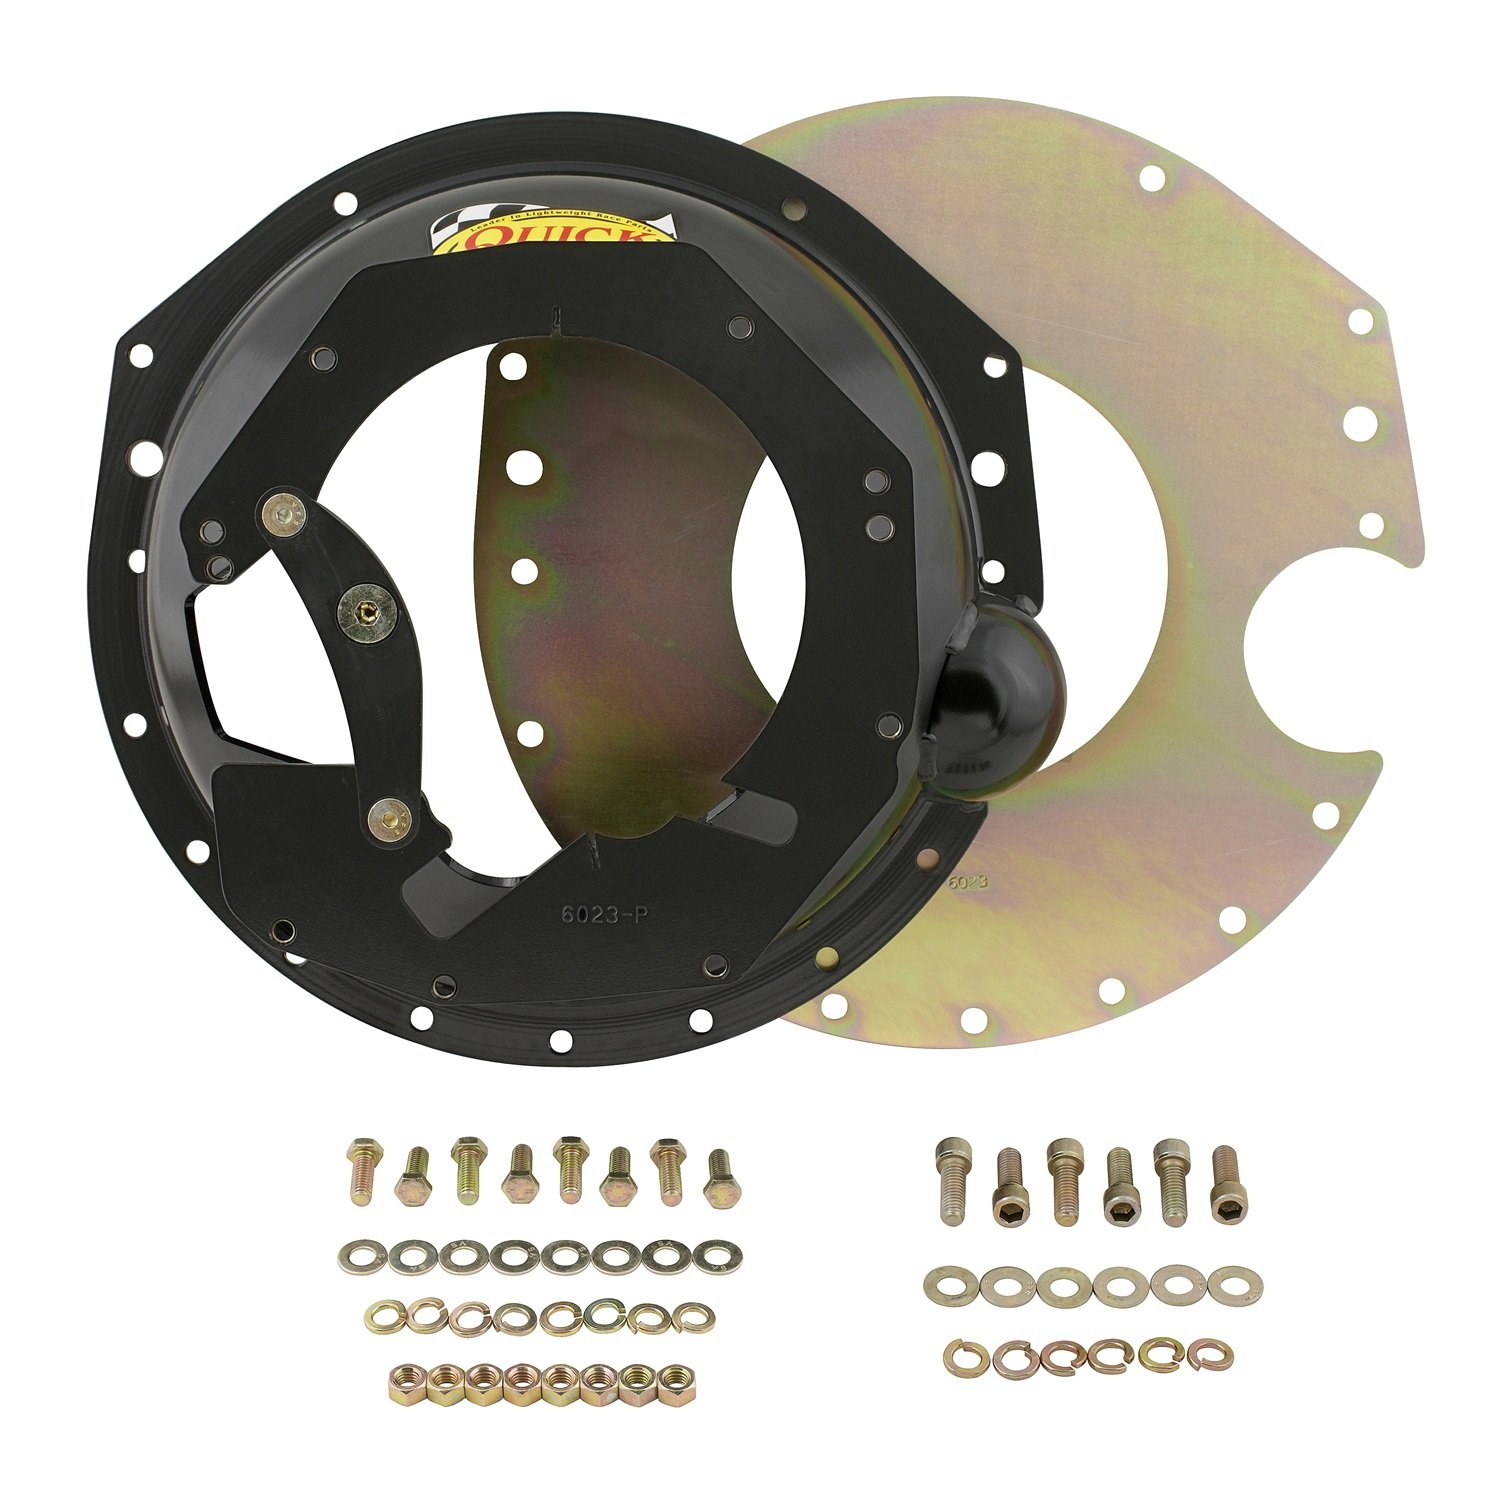 QuickTime (RM-6023PB) Chevrolet Small Block/Big Block Engine to T56 LS-1 Transmission Bellhousing by Quick Time